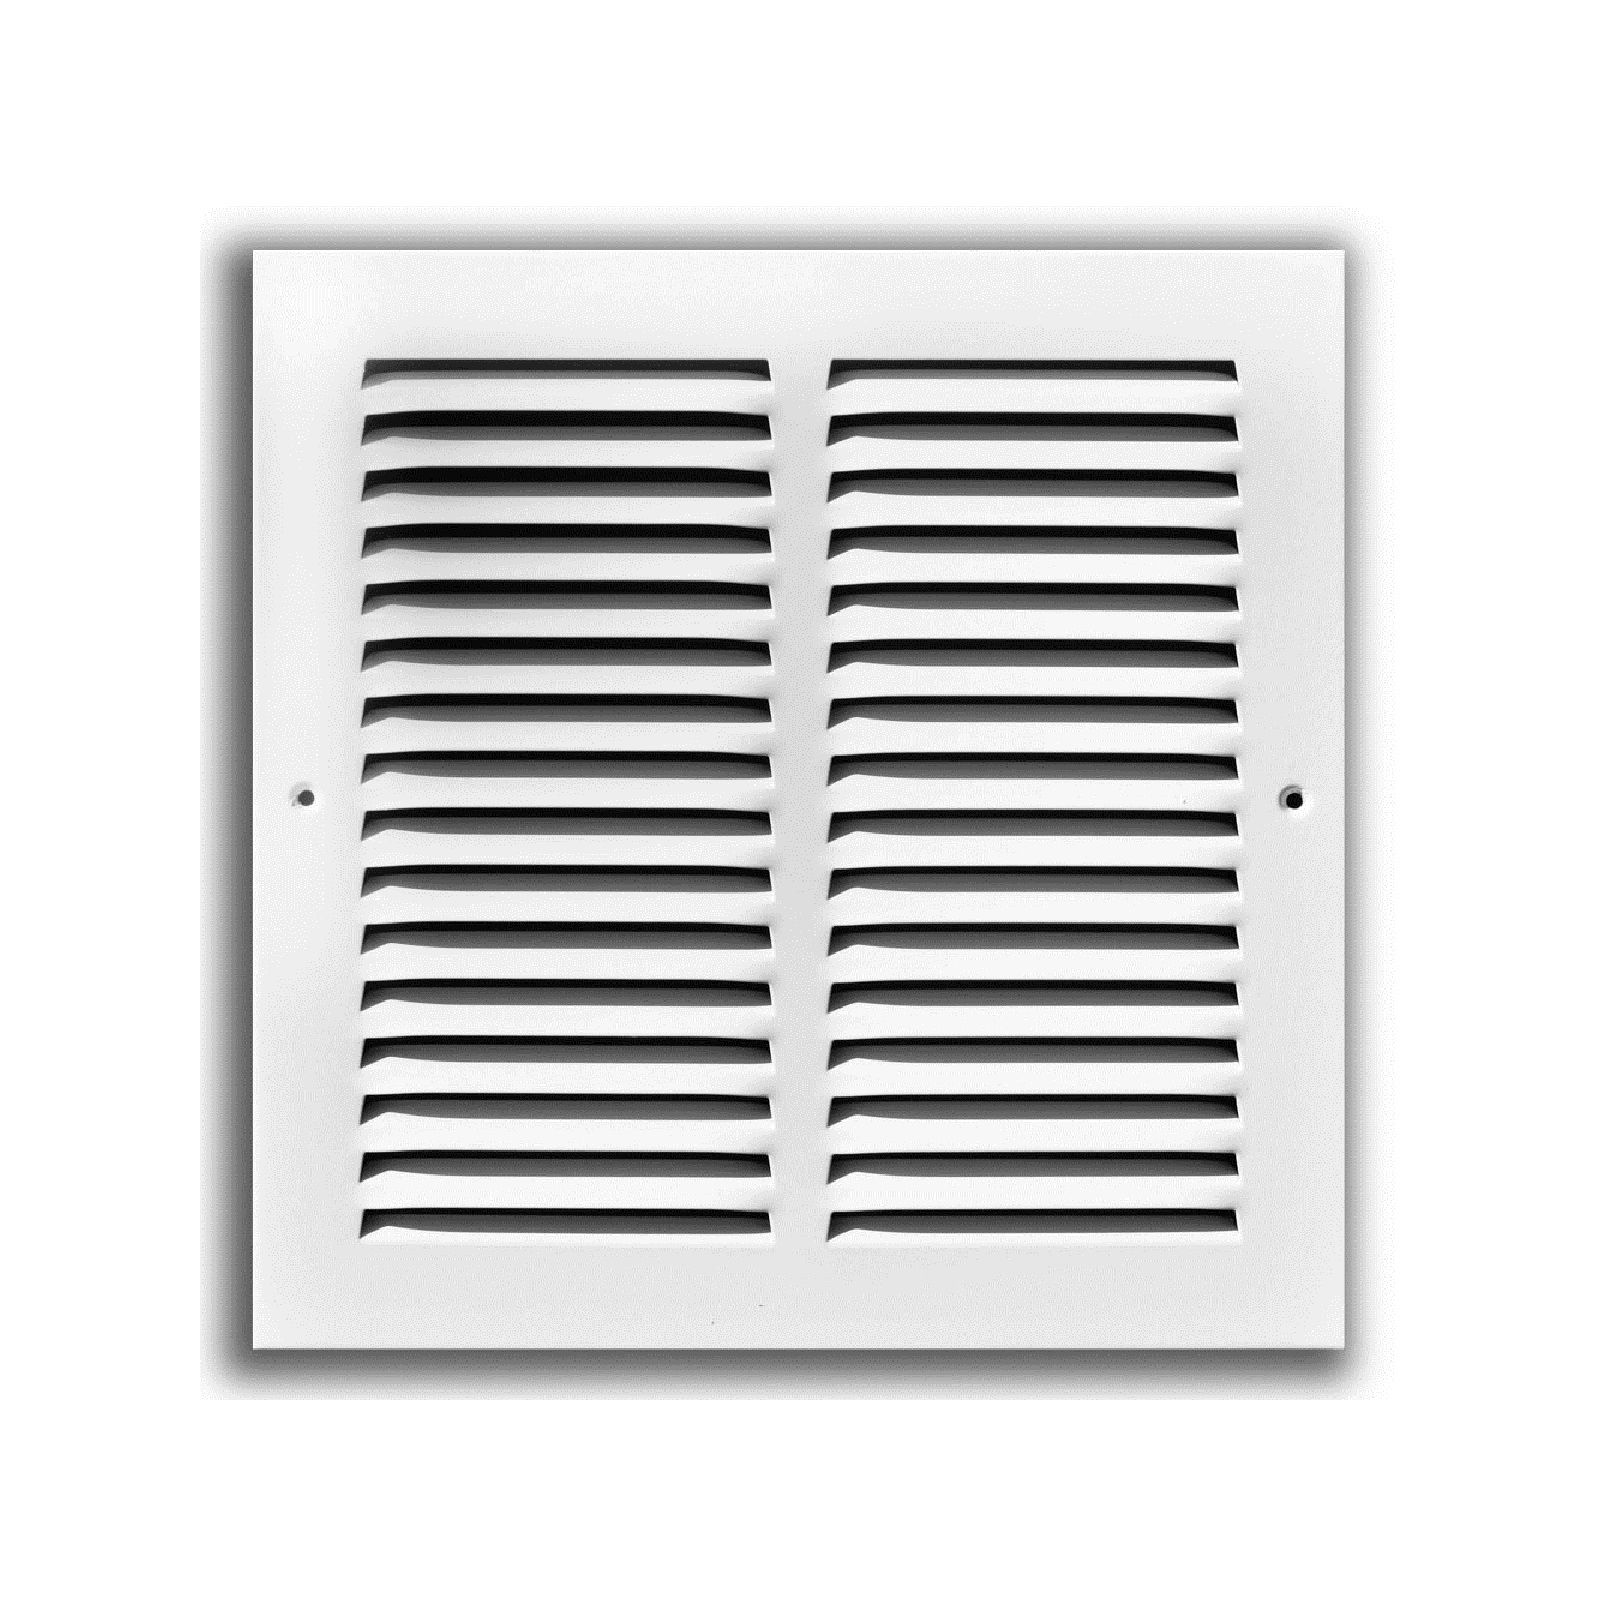 "TRUaire 170 20X24 - Steel Return Air Grille - 1/2"" Spaced Fin, White, 20"" X 24"""